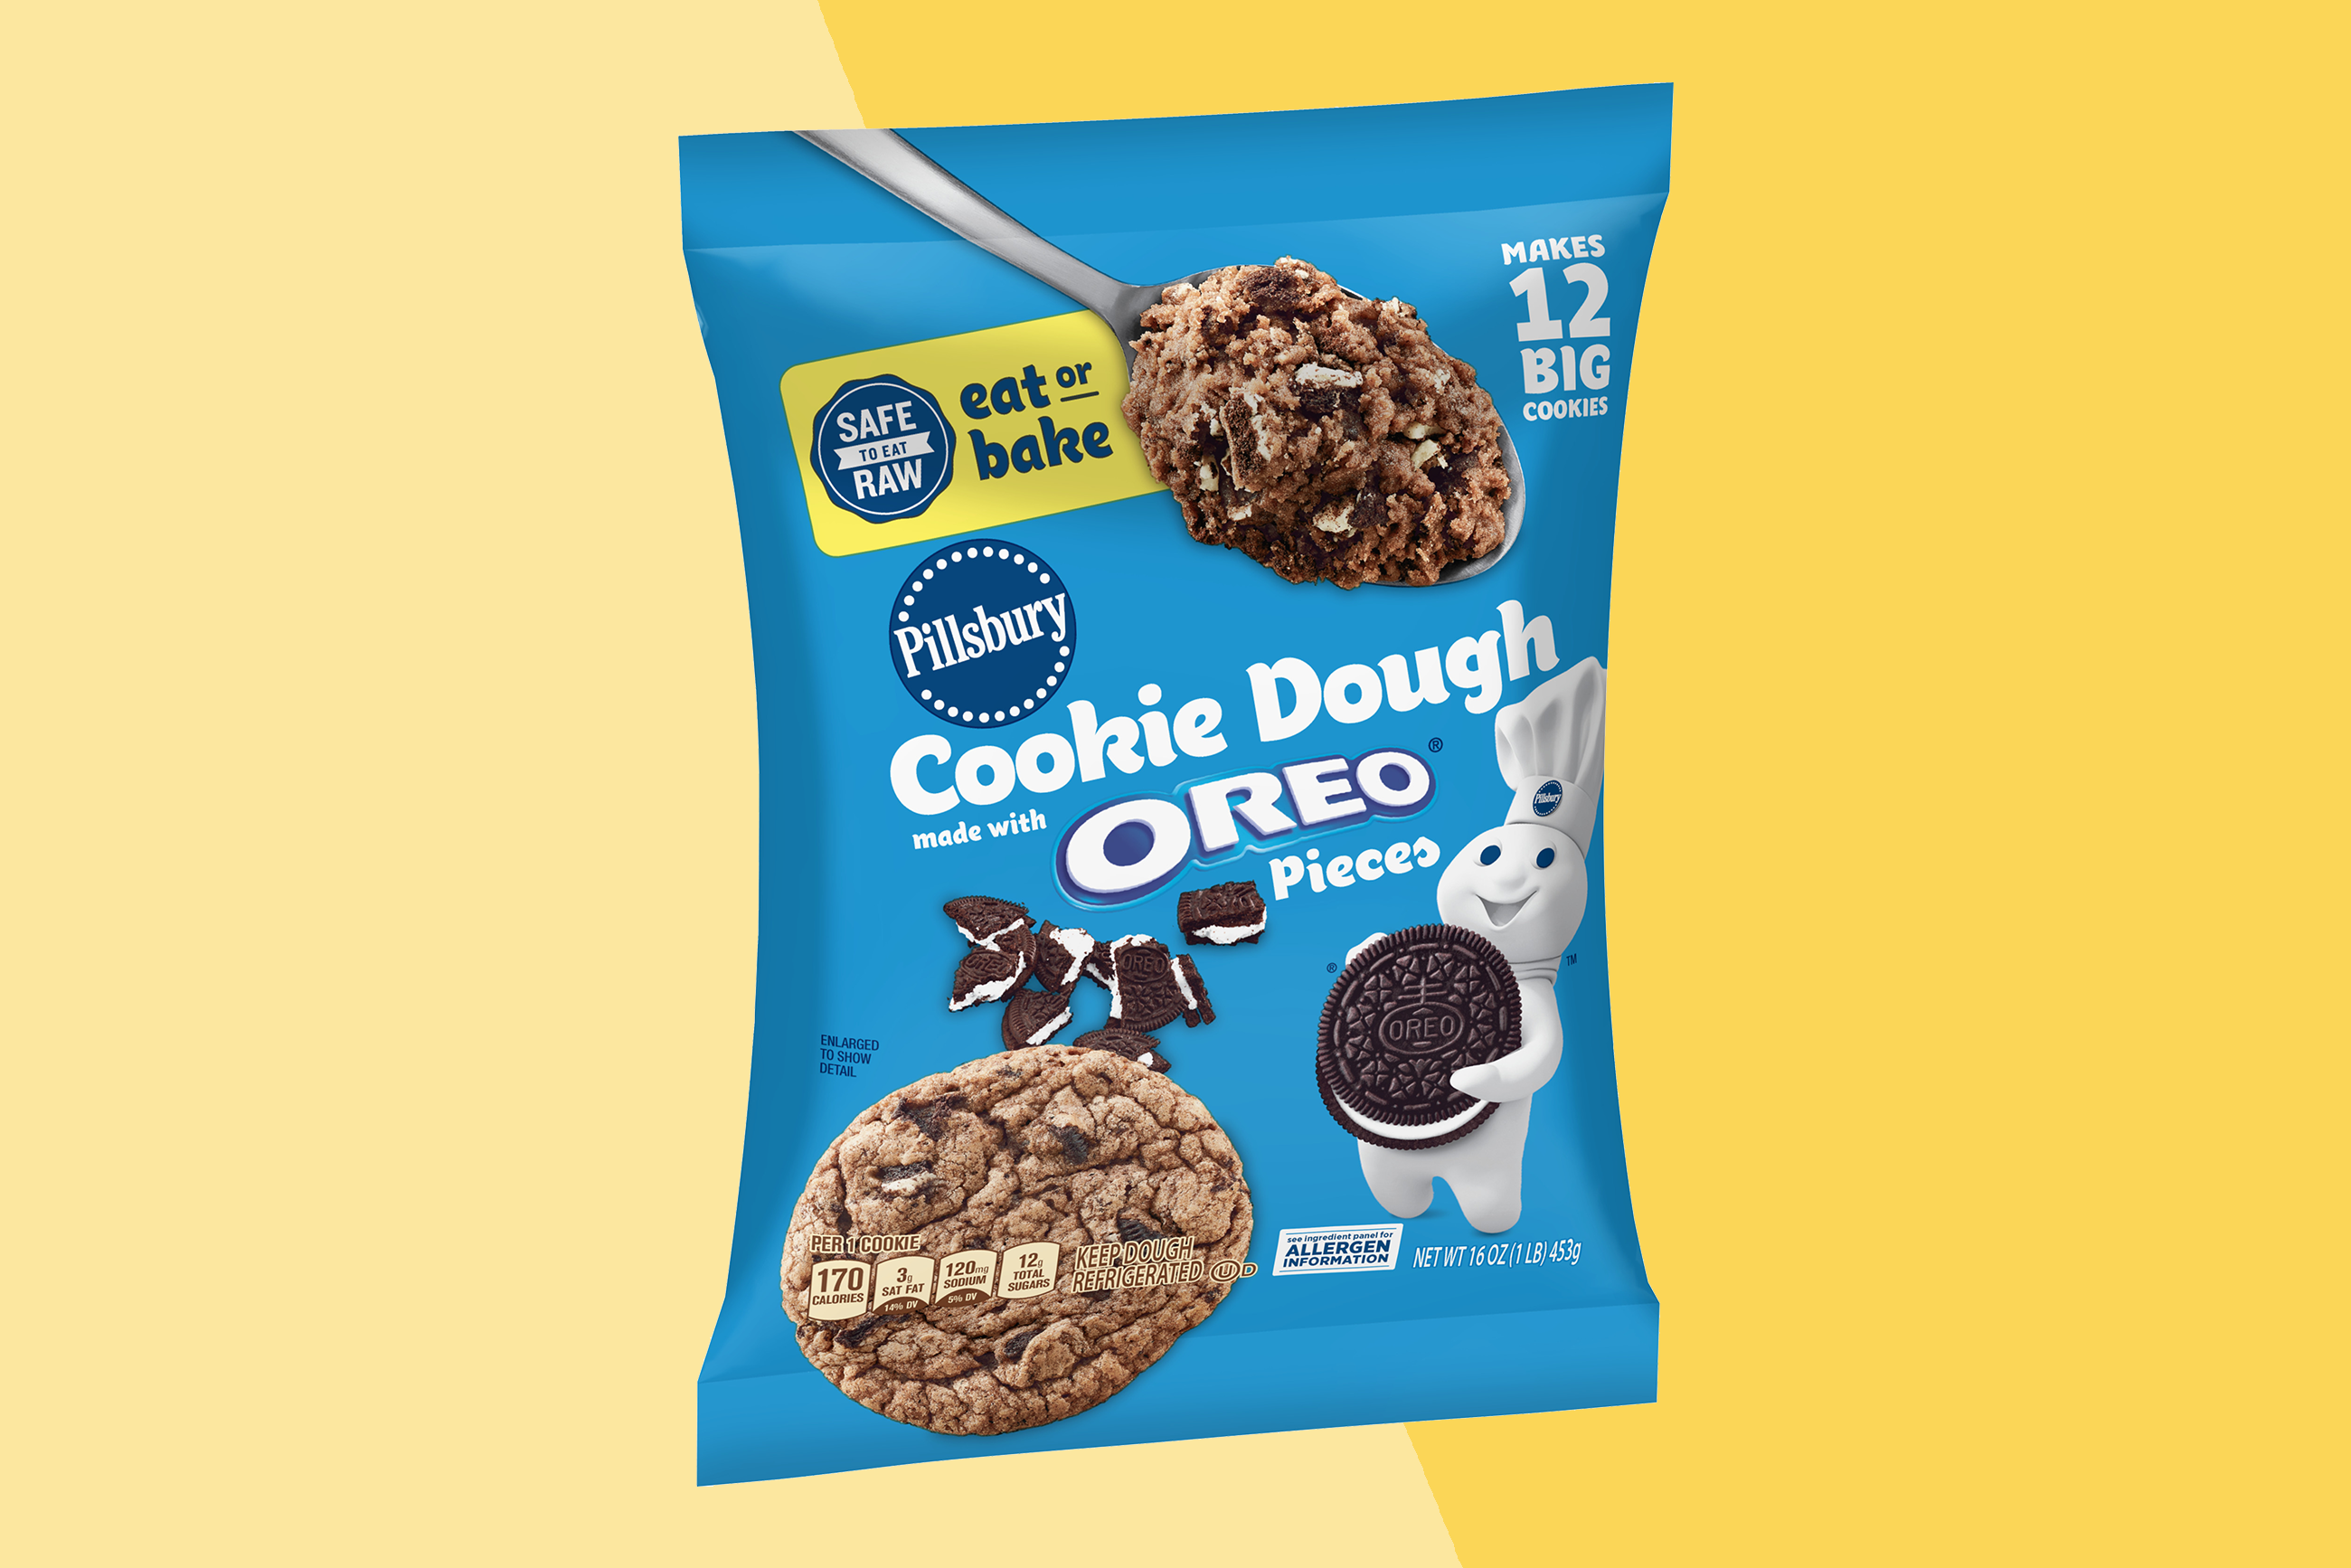 a package of Pillsbury Cookie Dough made with OREO cookie pieces on a two-tone yellow background